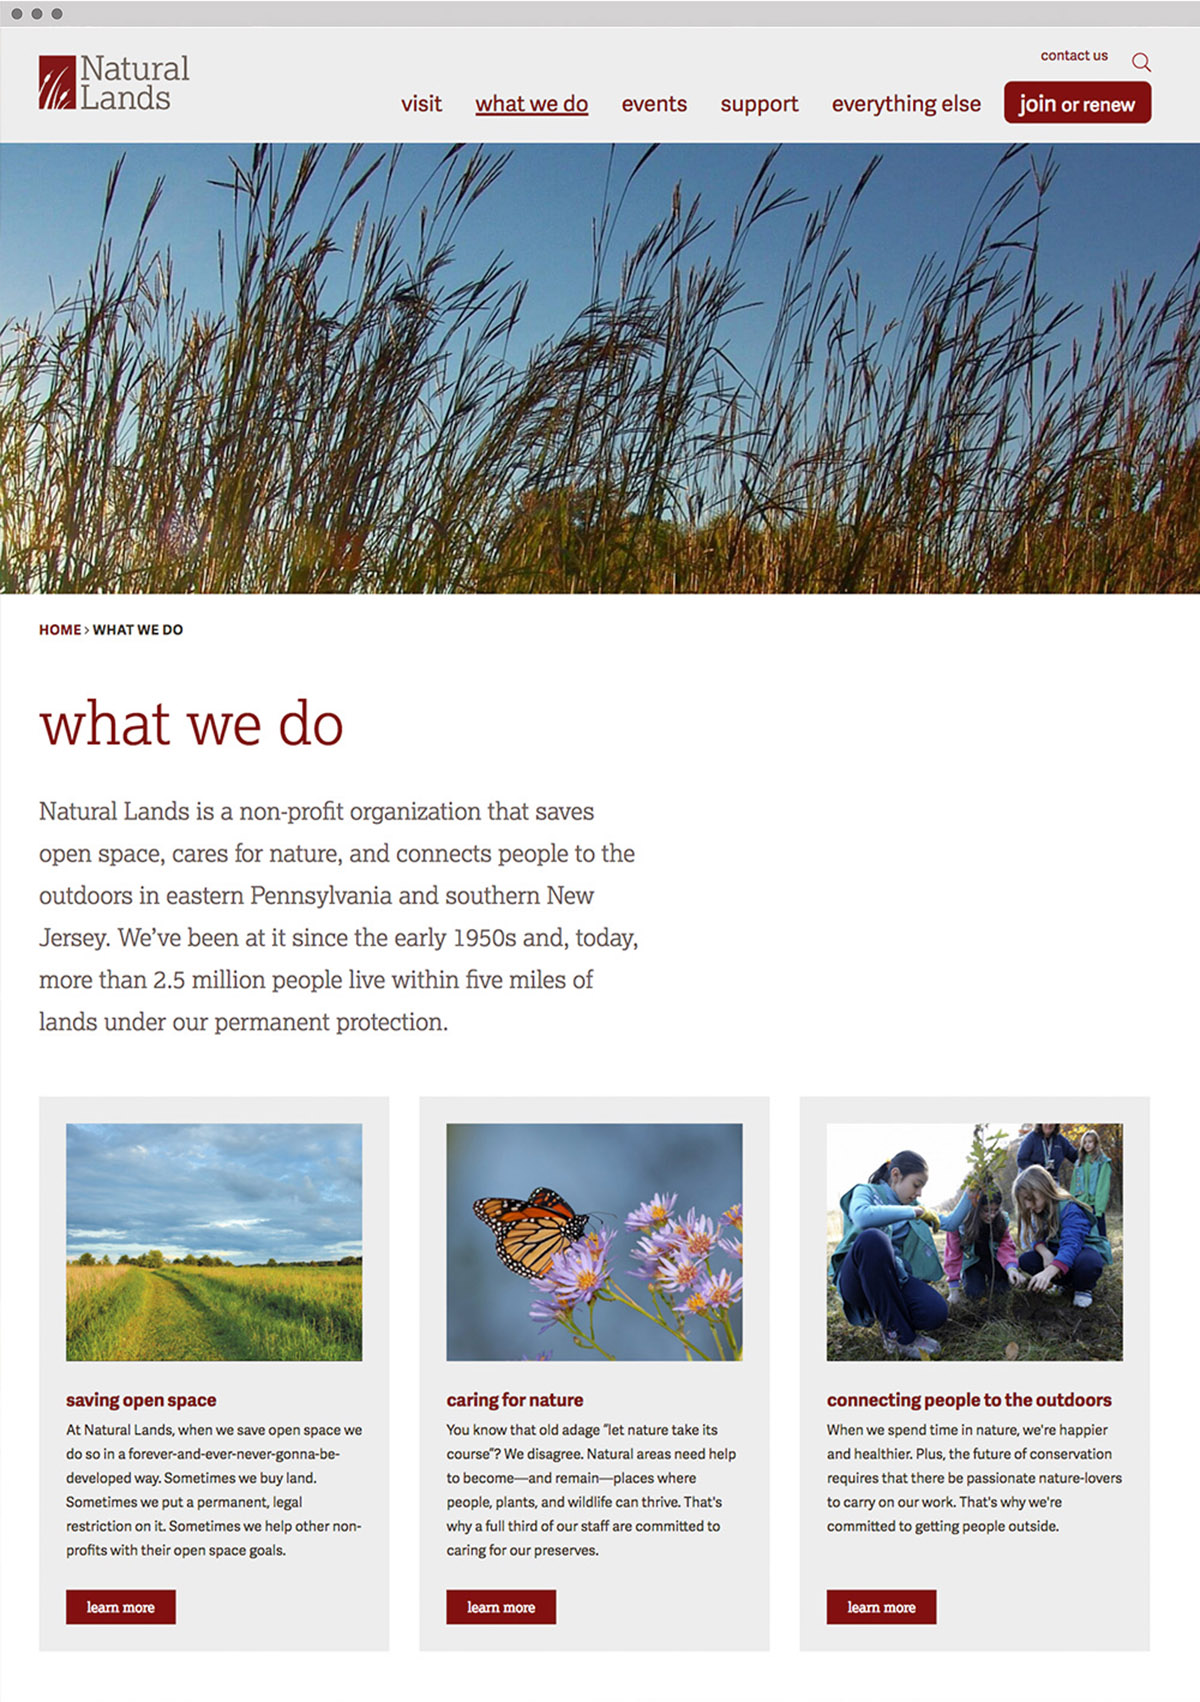 Natural Lands website